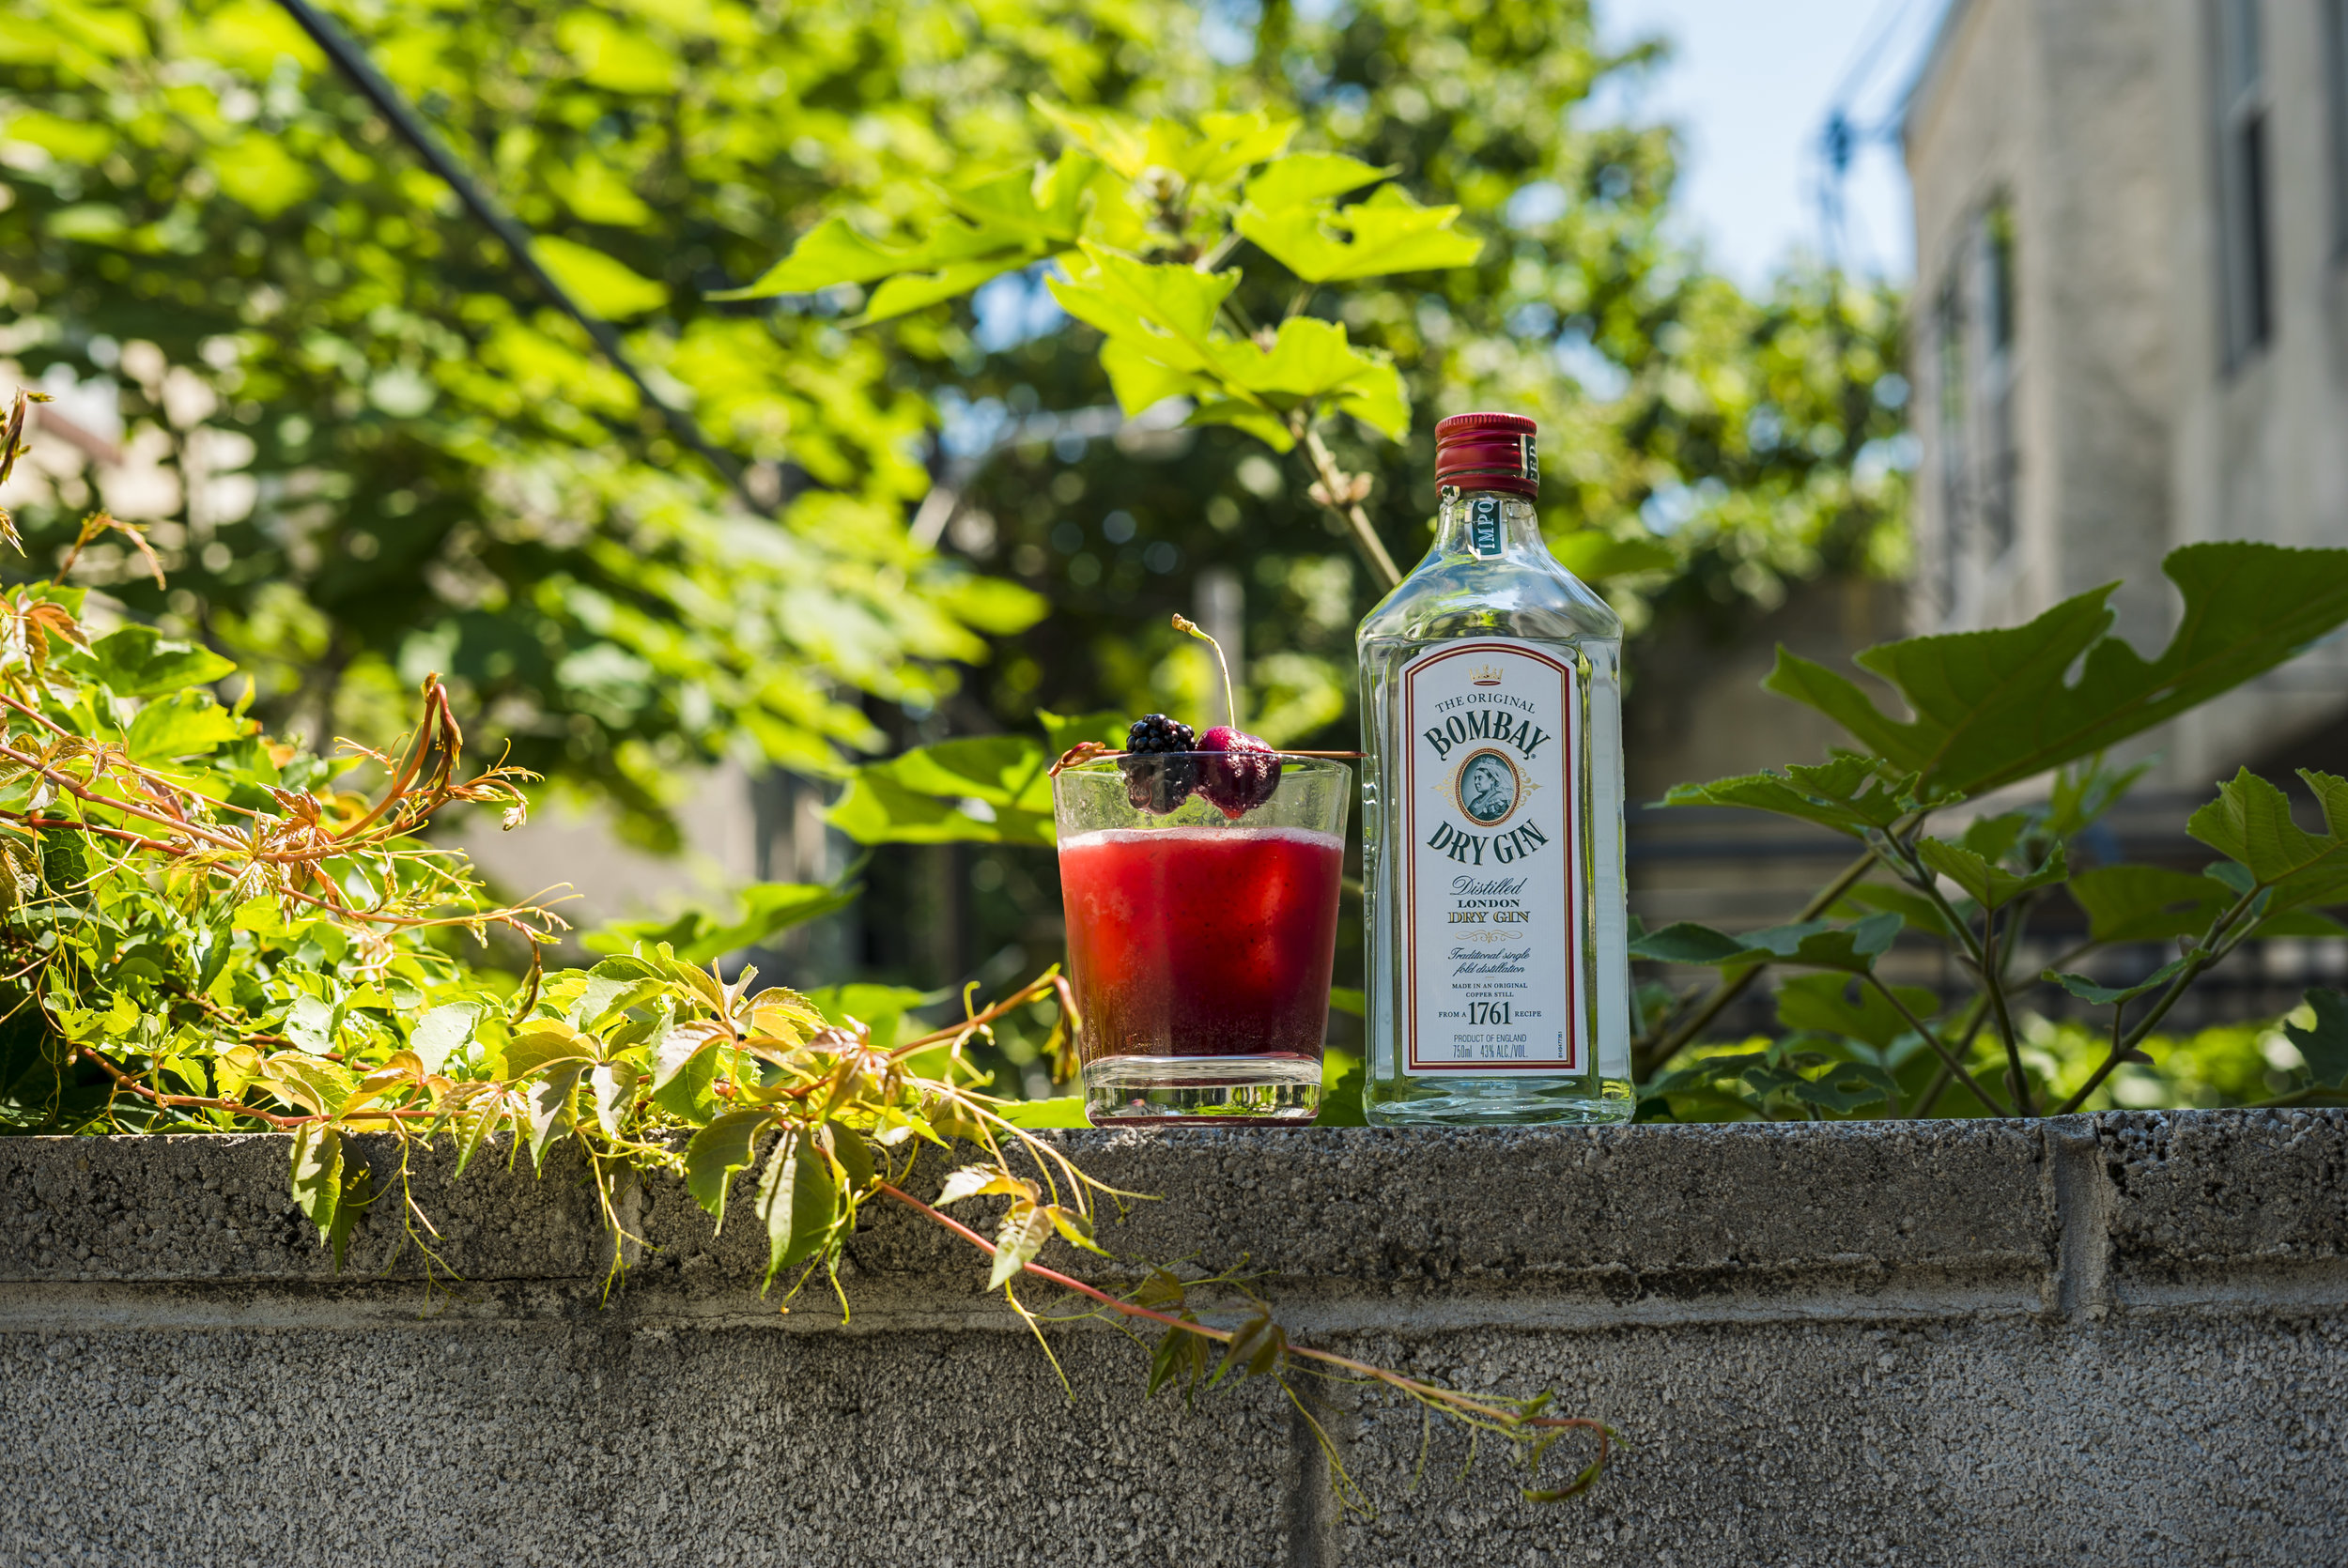 Cocktails and Dreams_0003_DSC09108.jpg